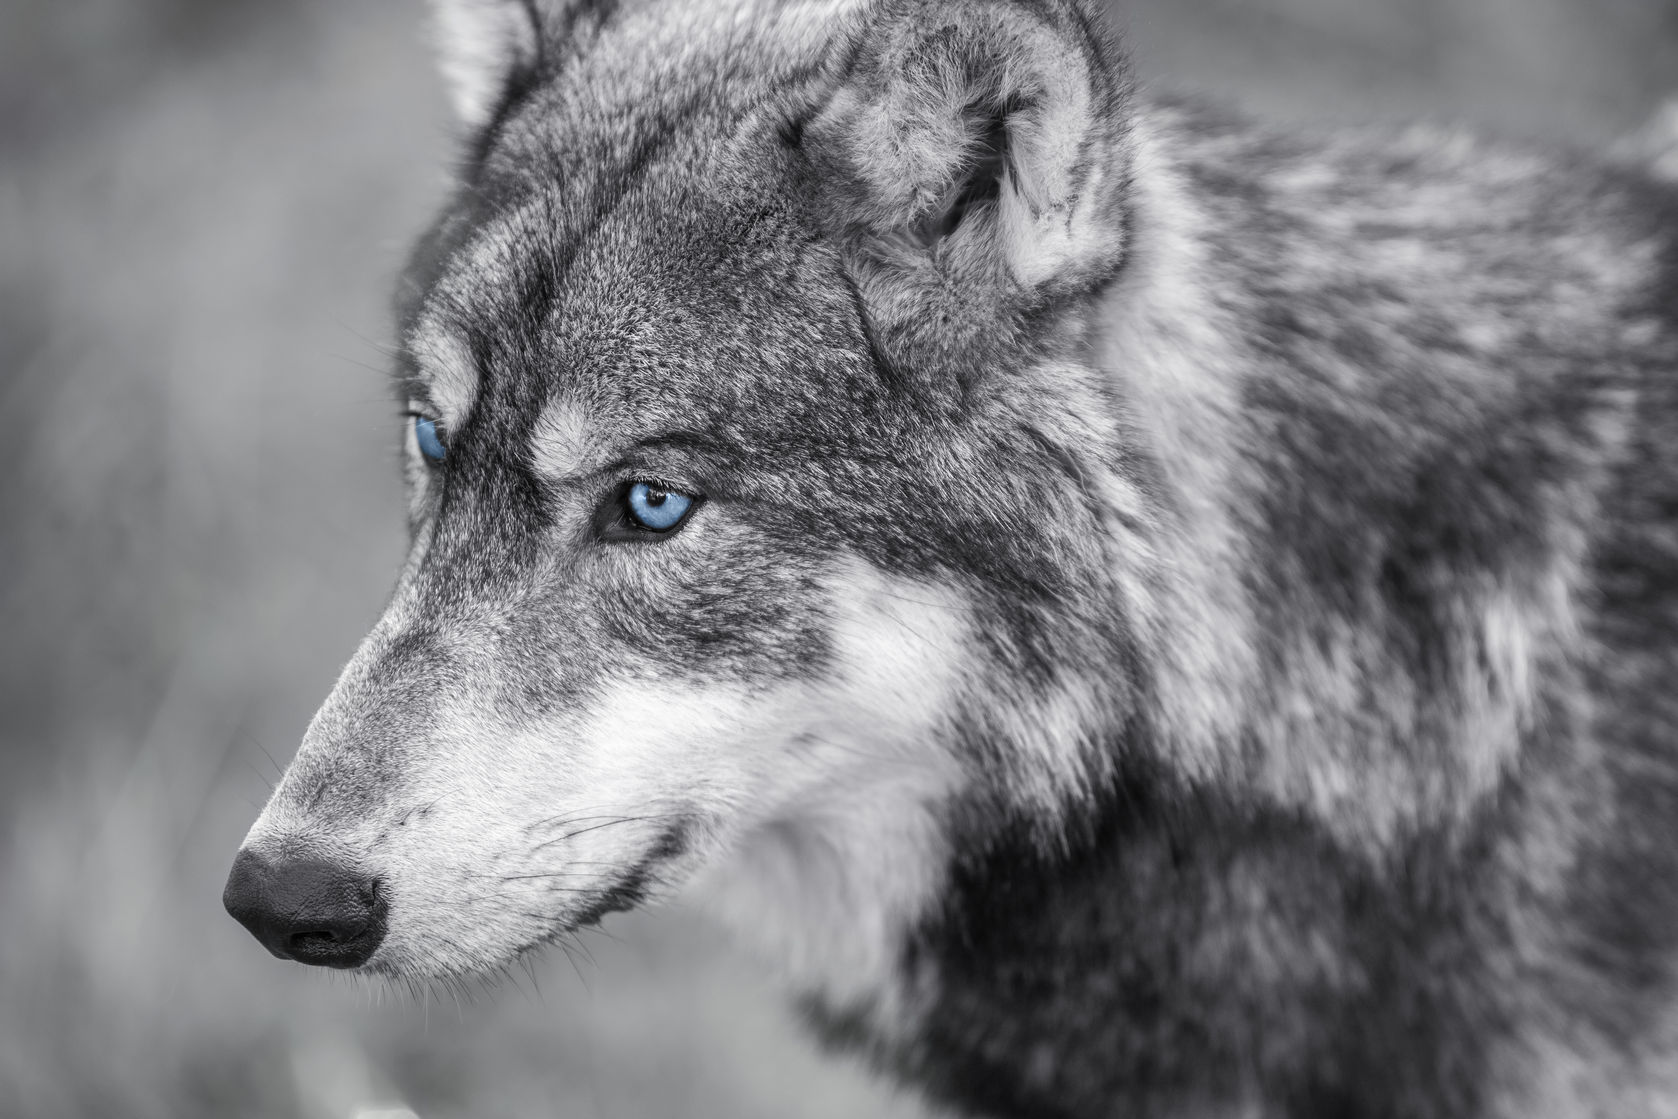 canis lupus, with blue eyes